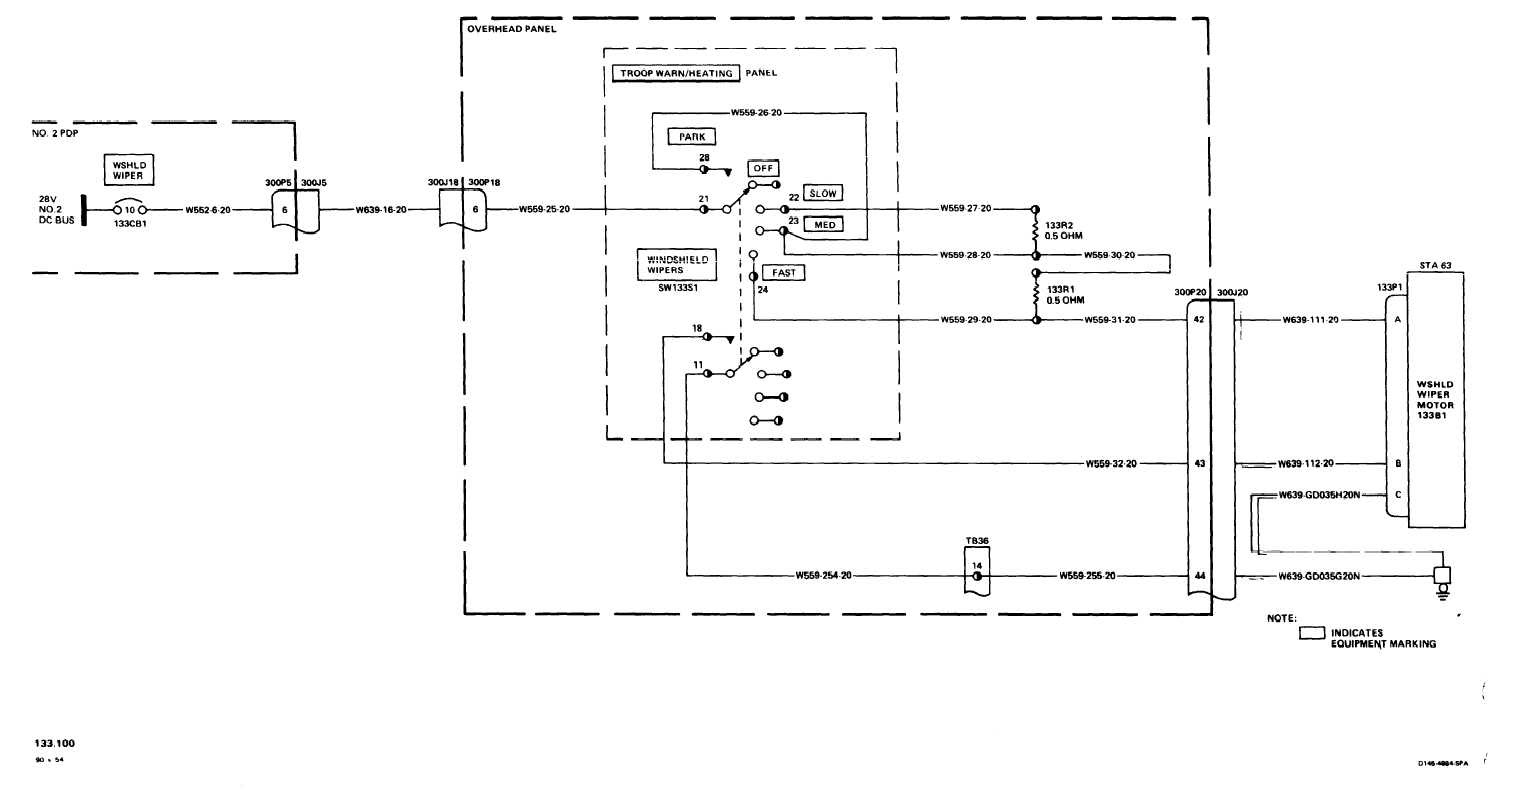 1997 Ford F150 Trailer Wiring Diagram from lh5.googleusercontent.com